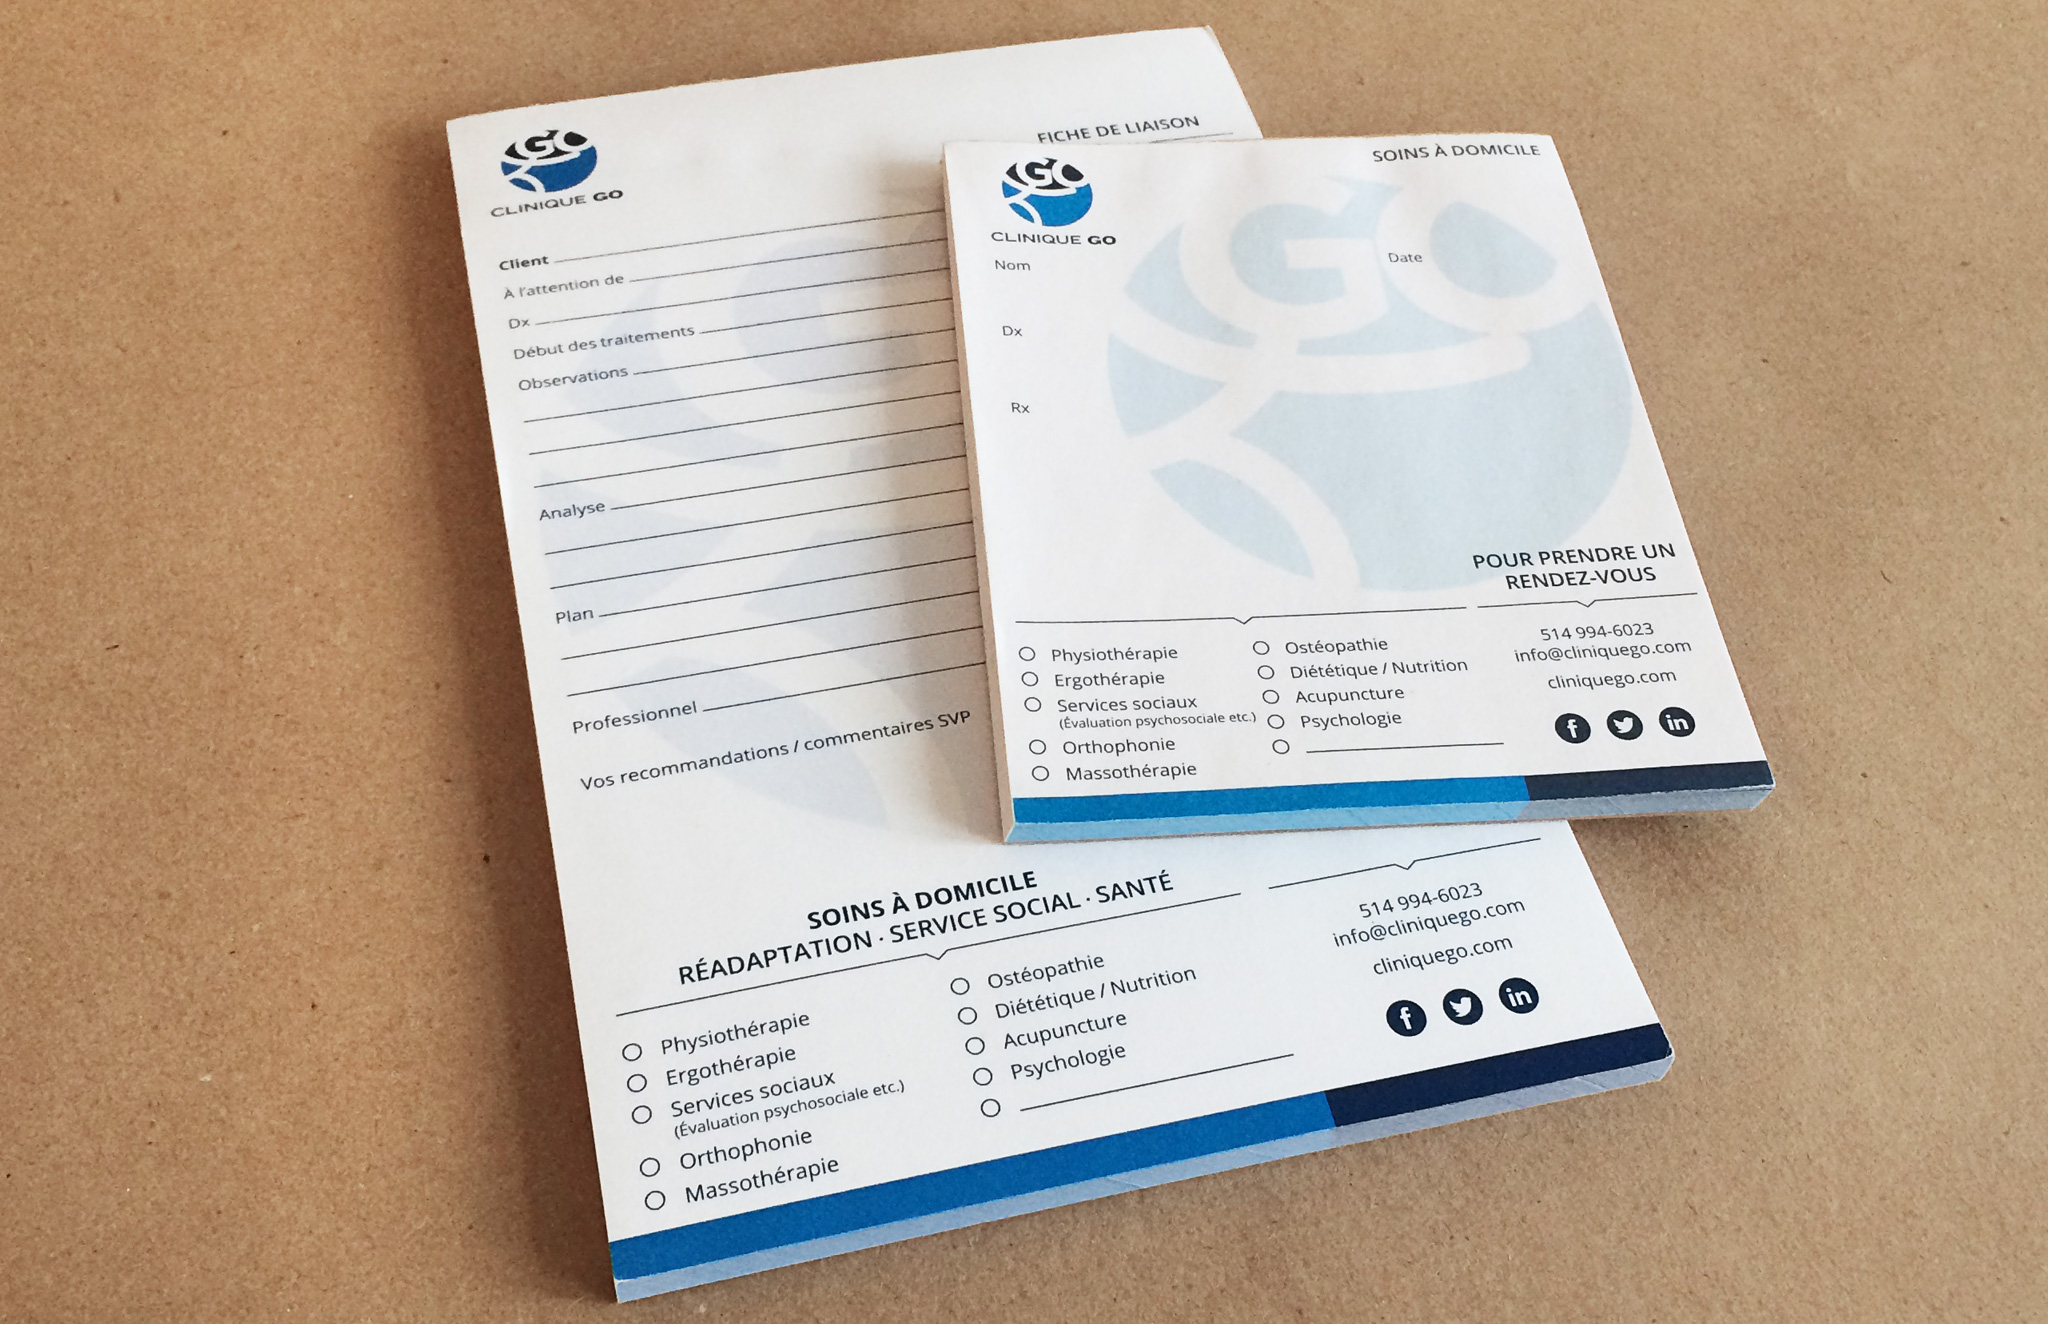 Bloc-notes et de prescription de Clinique GO.